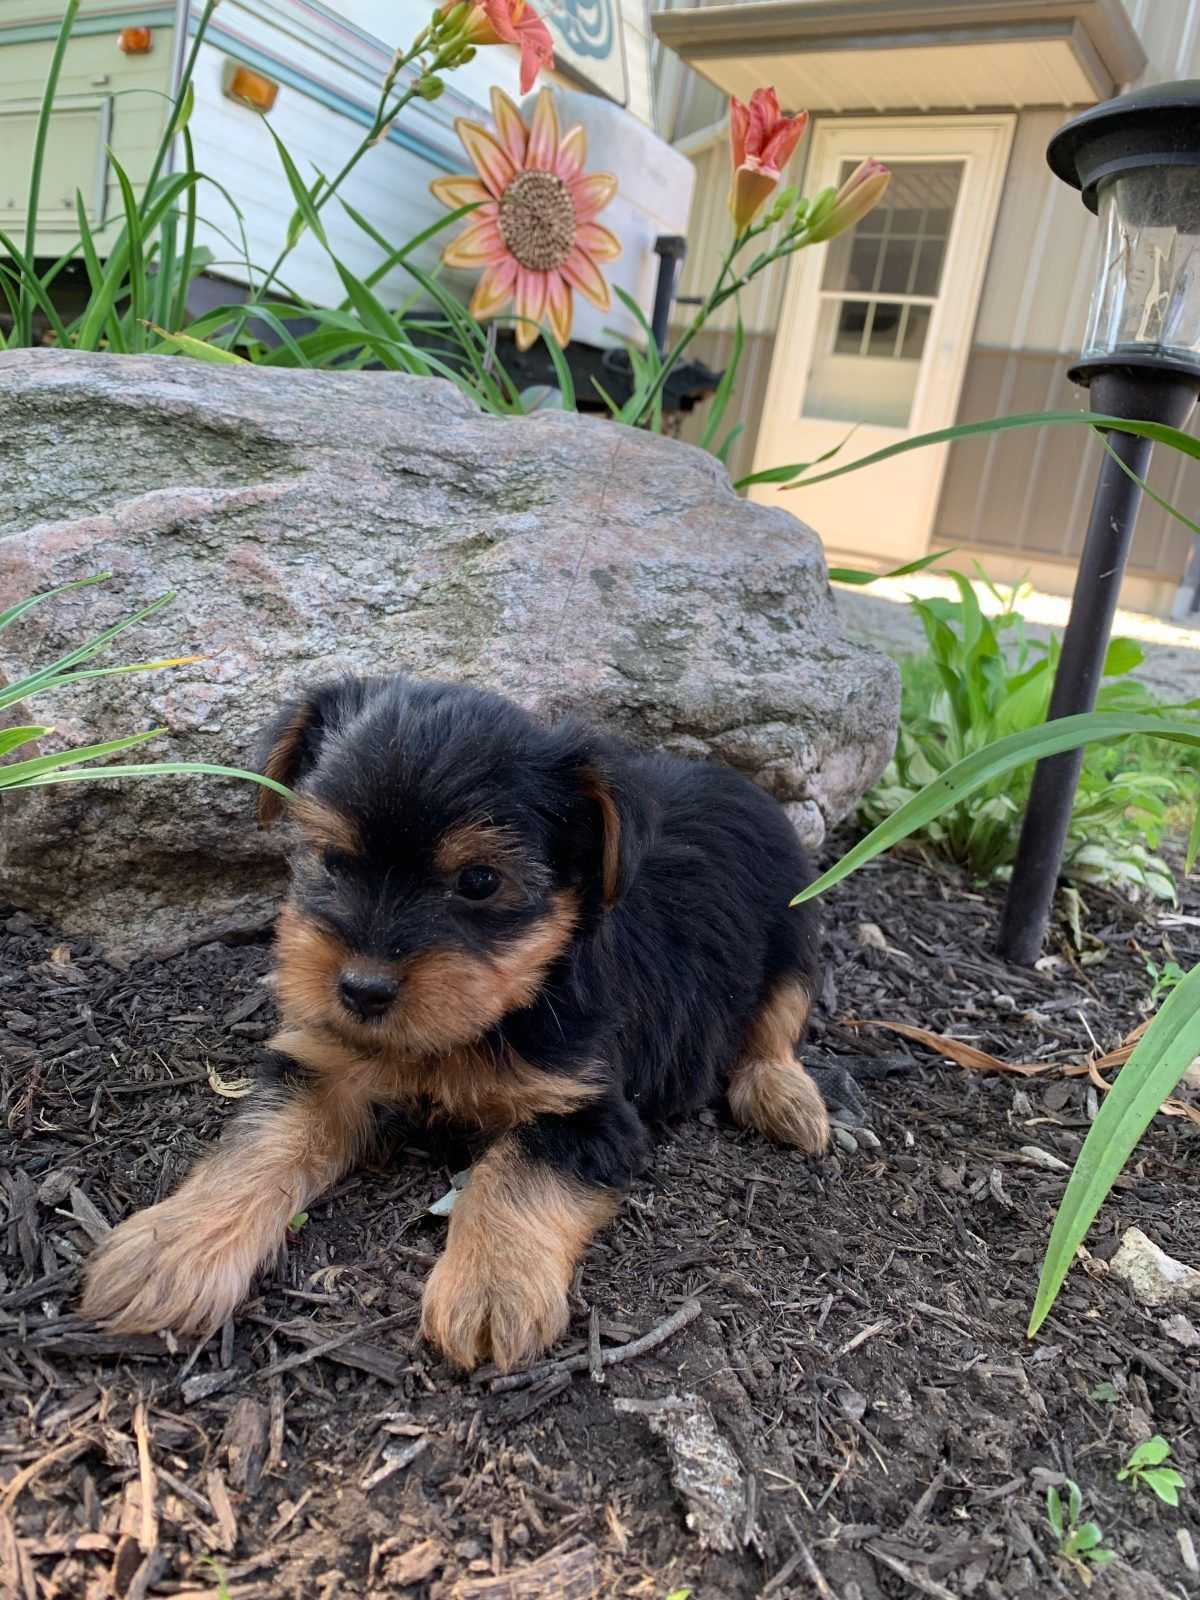 Frank AKC Yorkie puppy for sale in Tuscola, Illinois.